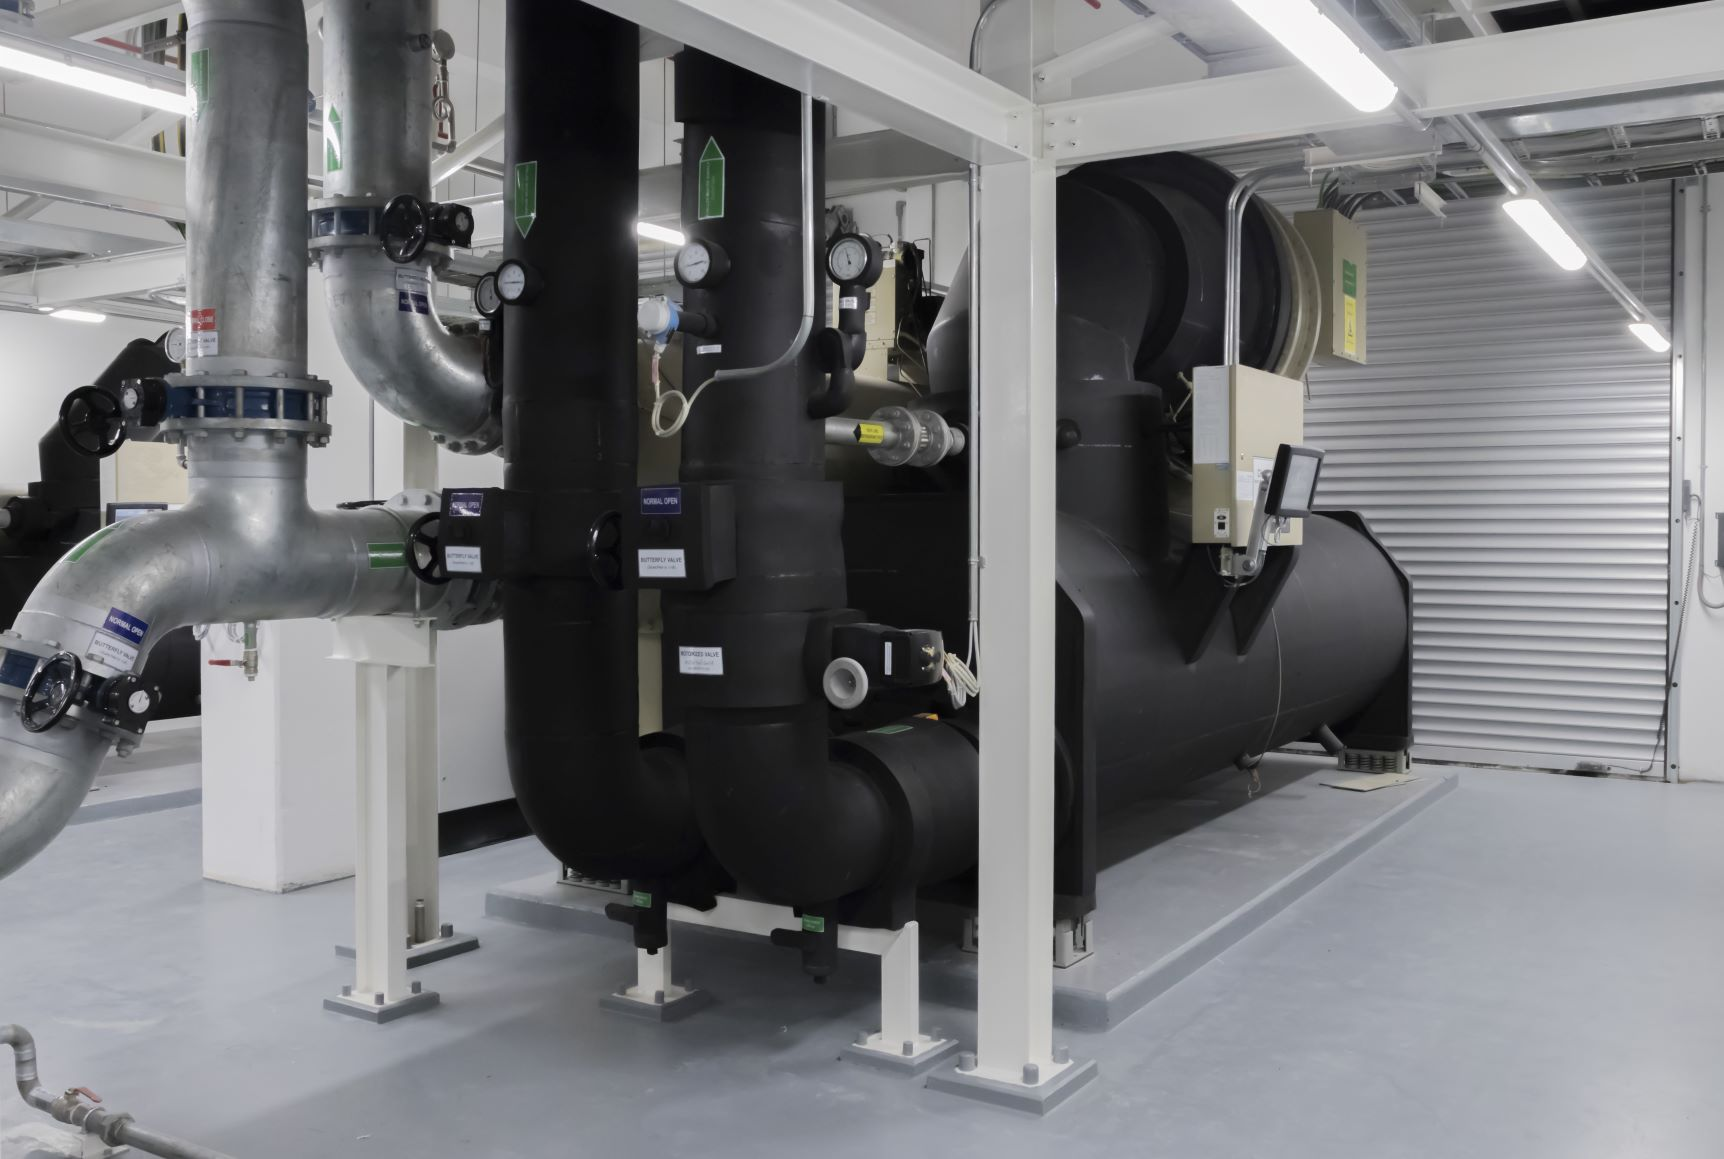 EES_Chiller_ProducesChilledWaterForBuildingCooling-1